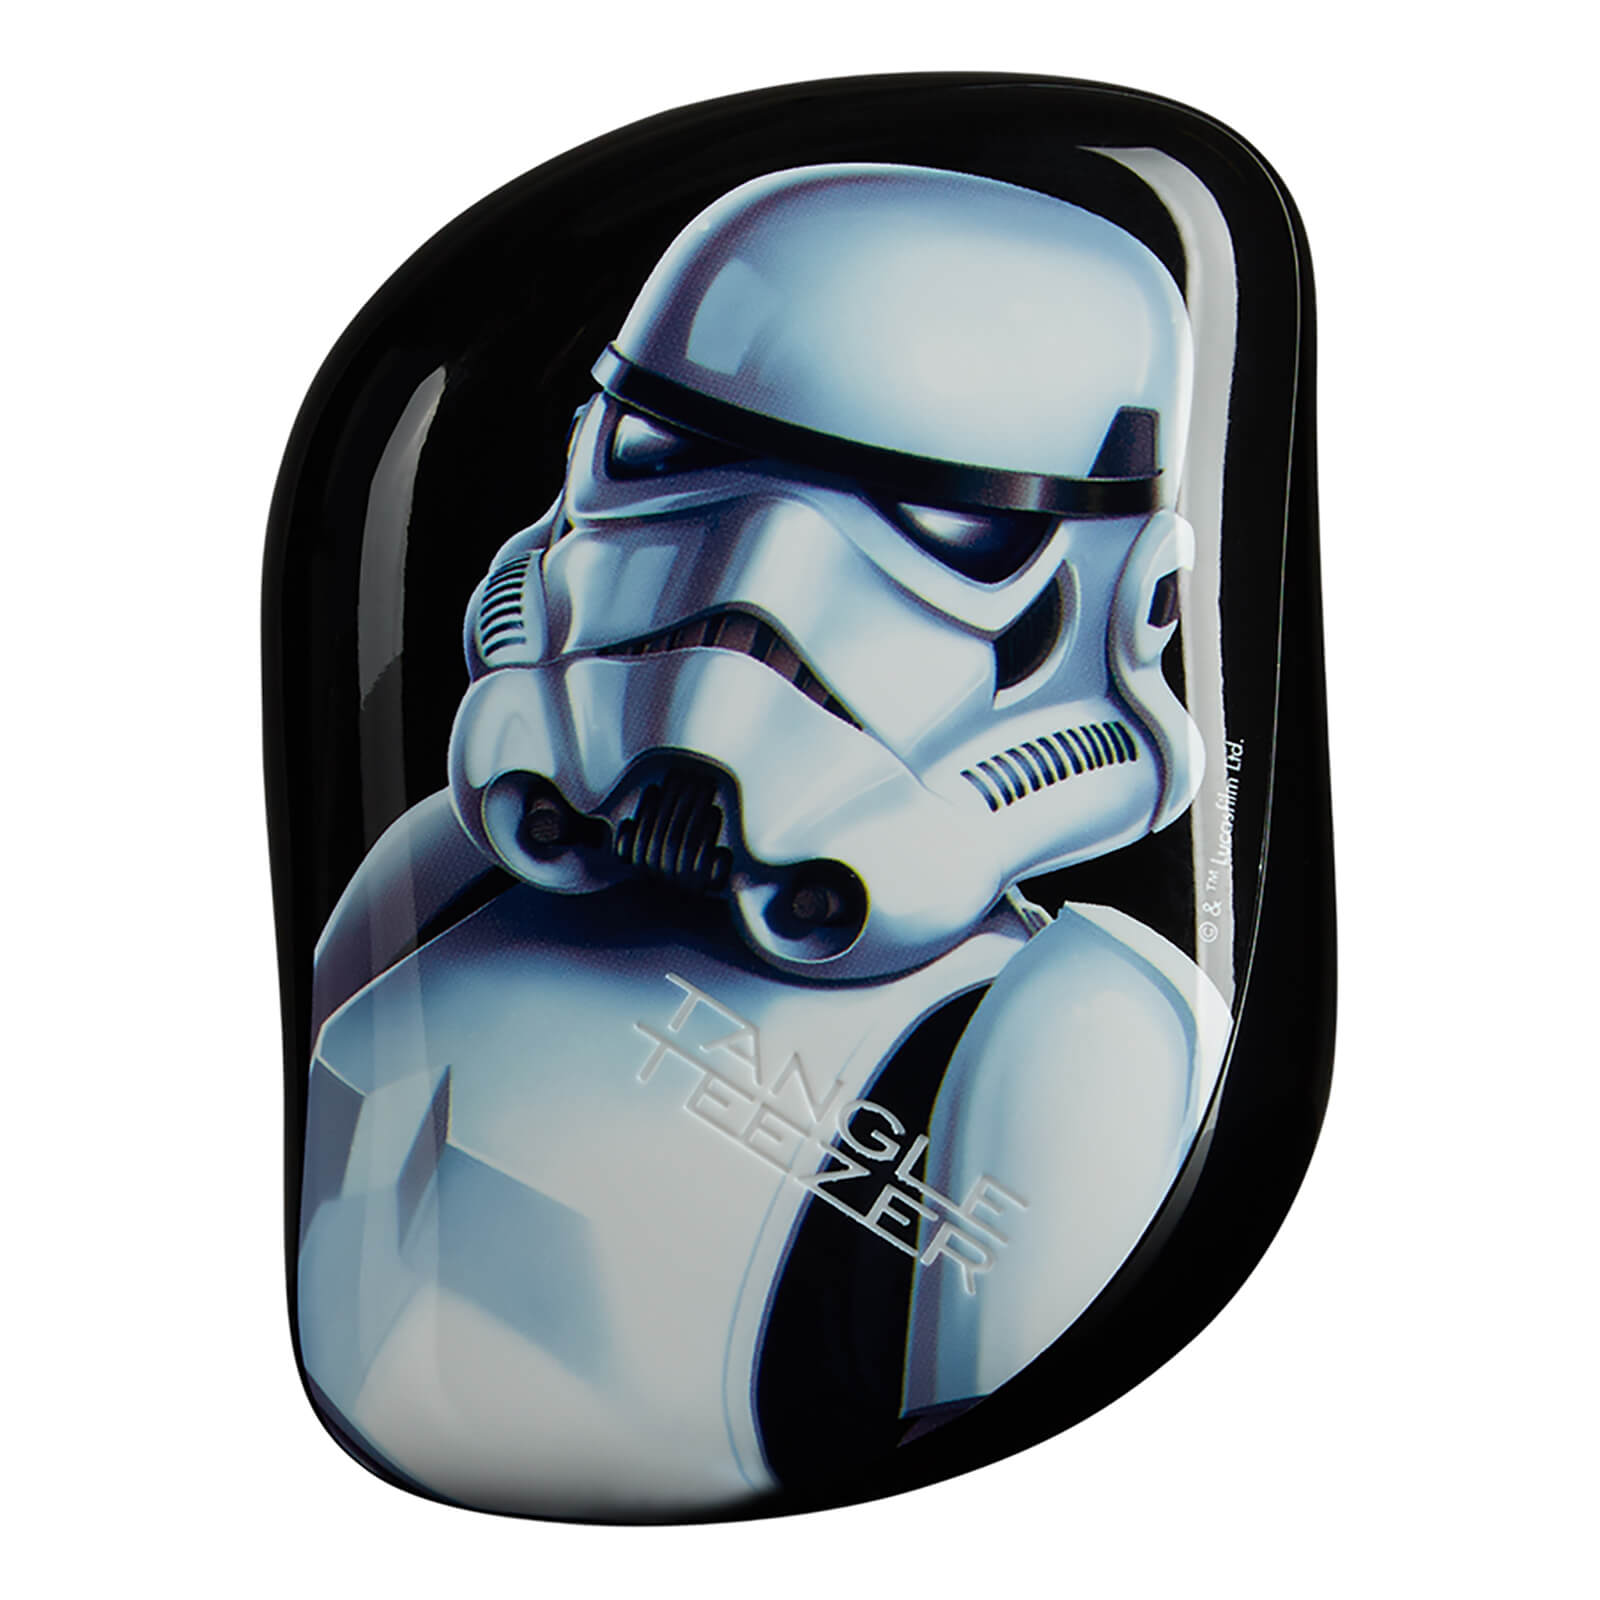 Tangle Teezer Compact Styler Hairbrush - Disney Star Wars Stormtrooper